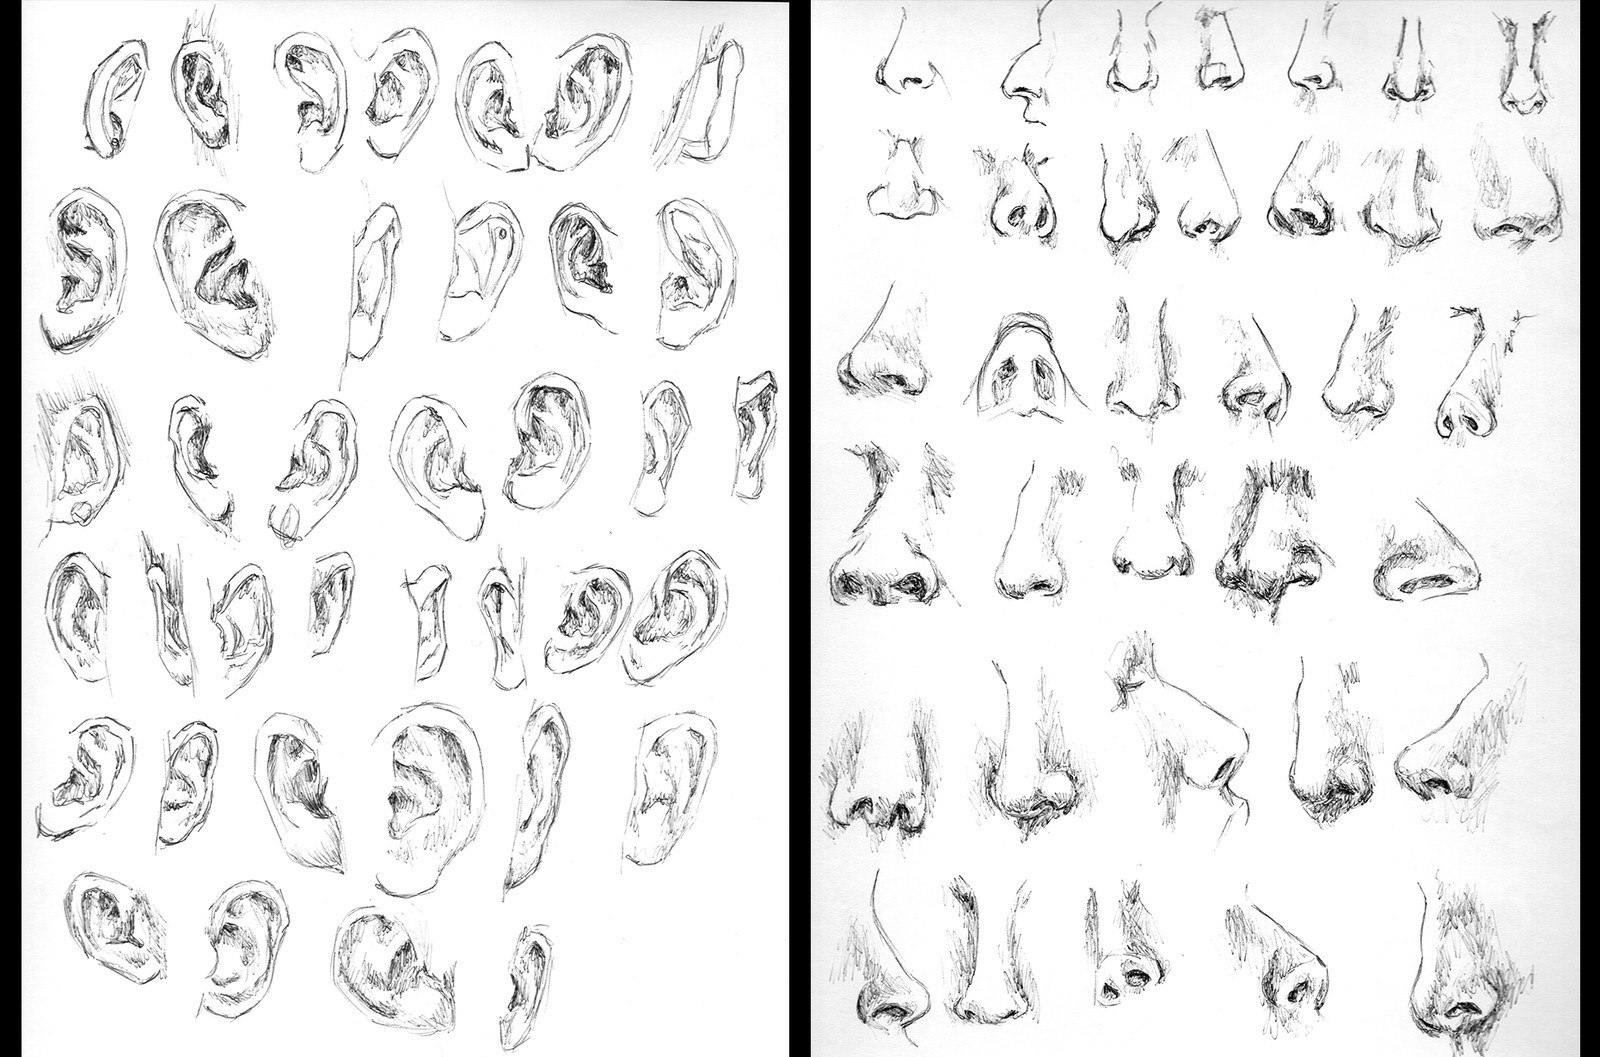 Anatomy practice - Ears and Noses